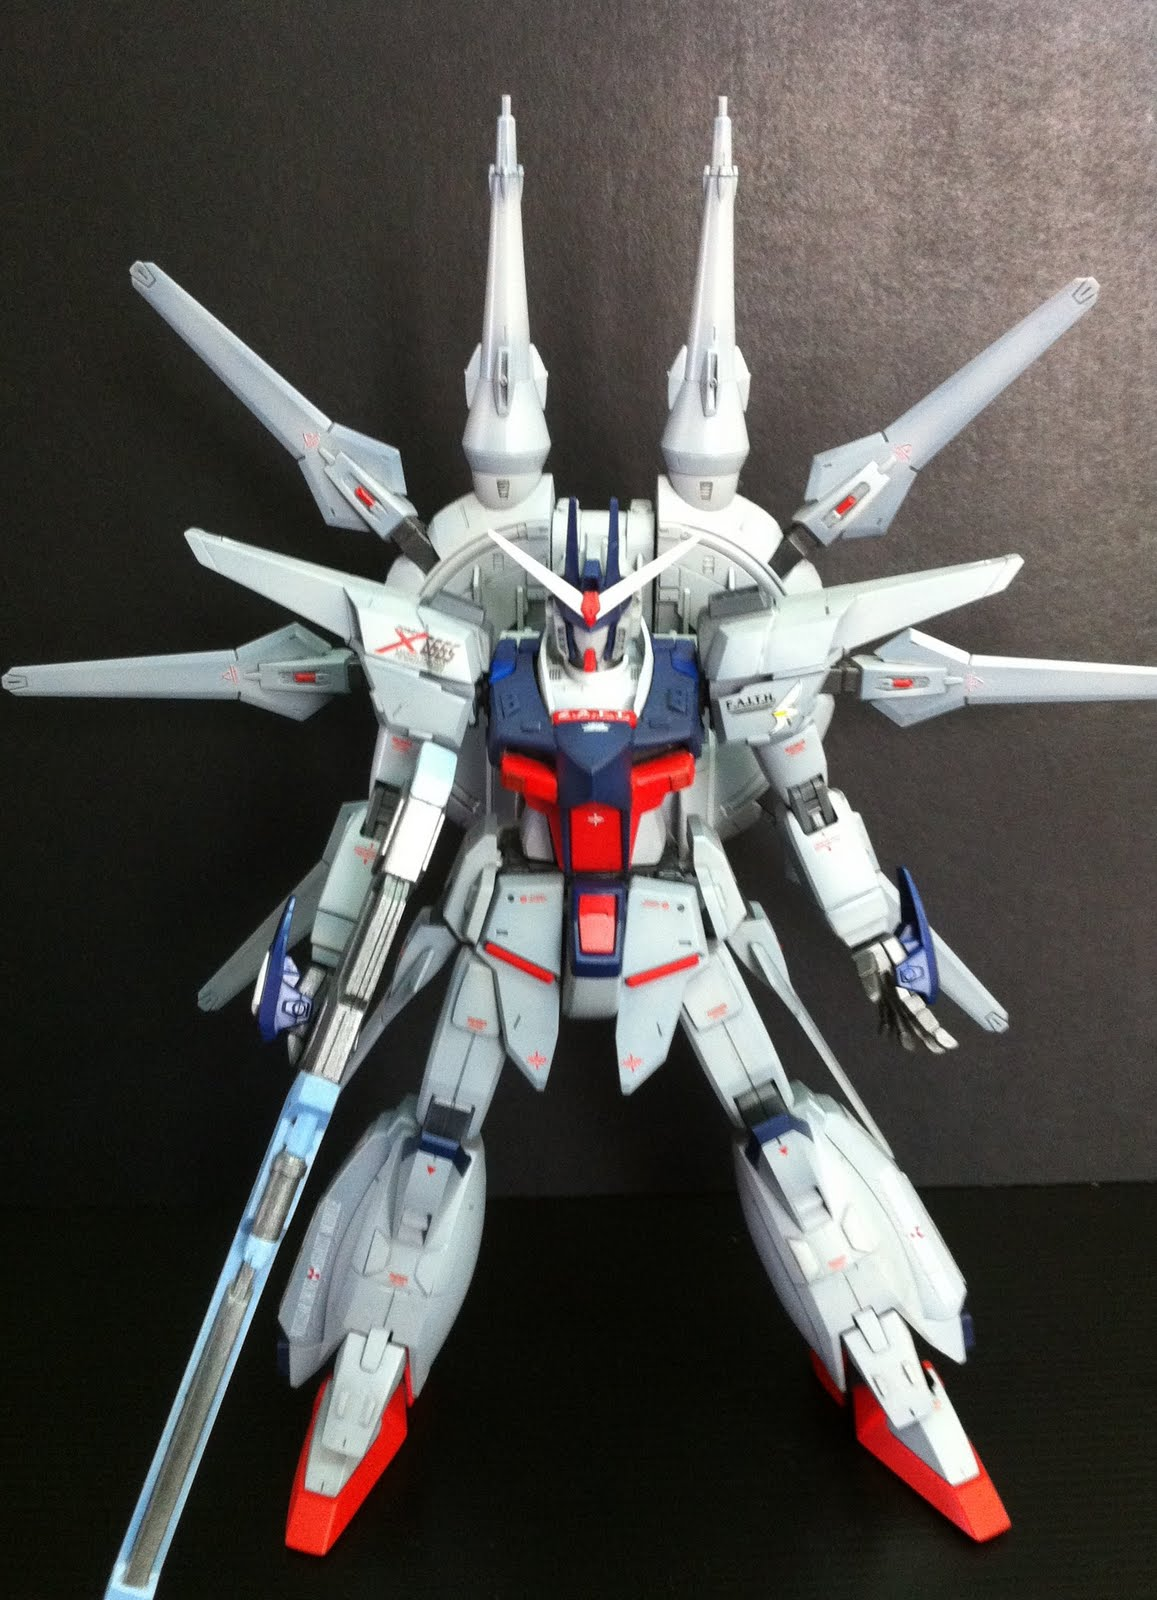 Legend Gundam Images - Reverse Search